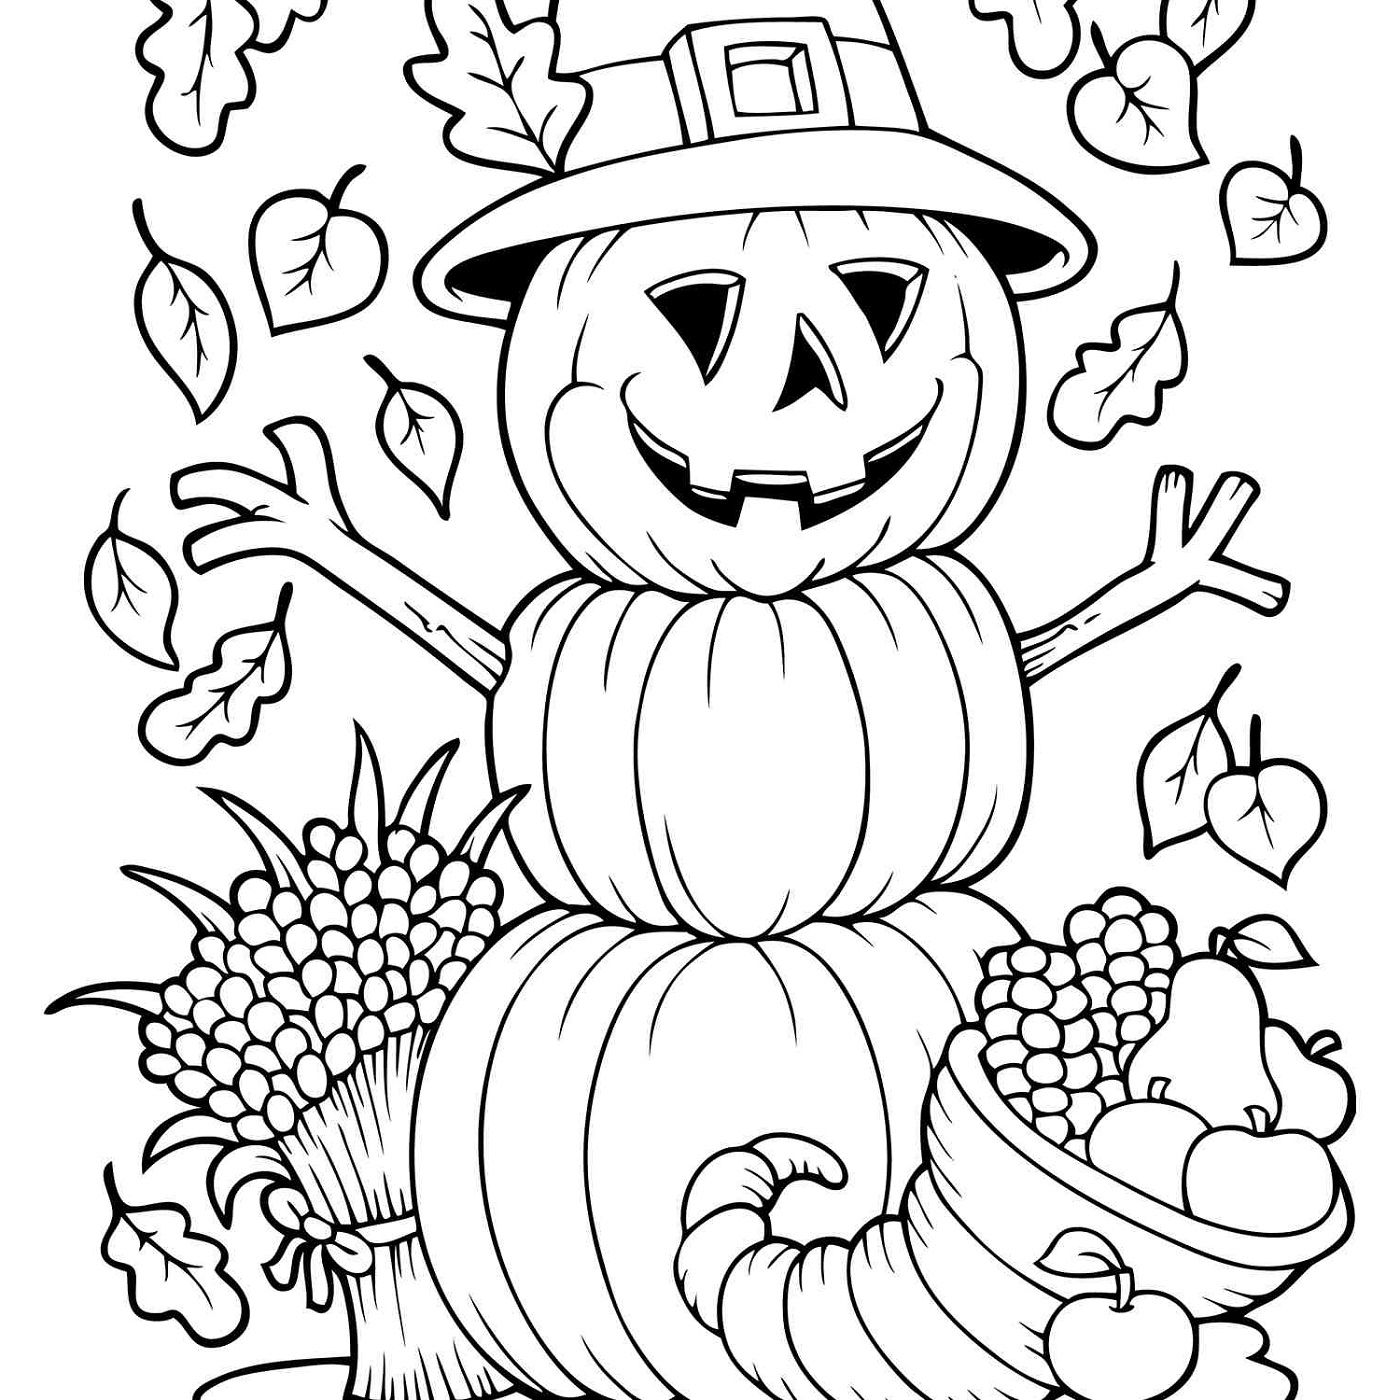 Printable Autumn And Fall Coloring Pages Fall Coloring Sheets Fall Coloring Pages Coloring Pages